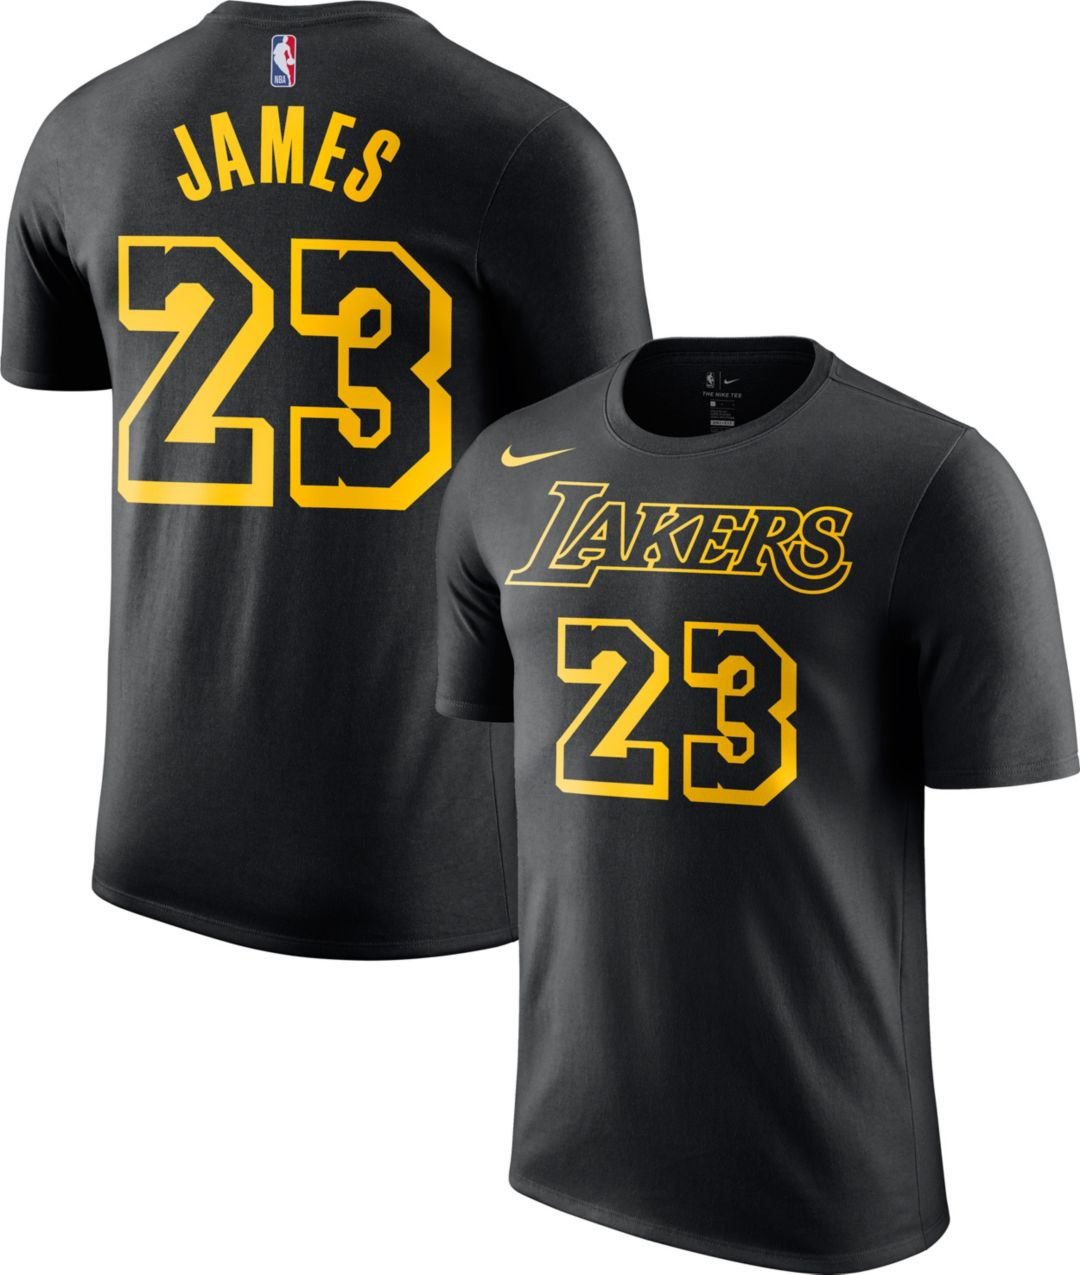 3751ac42 Nike Youth Los Angeles Lakers LeBron James Dri-FIT City Edition T ...